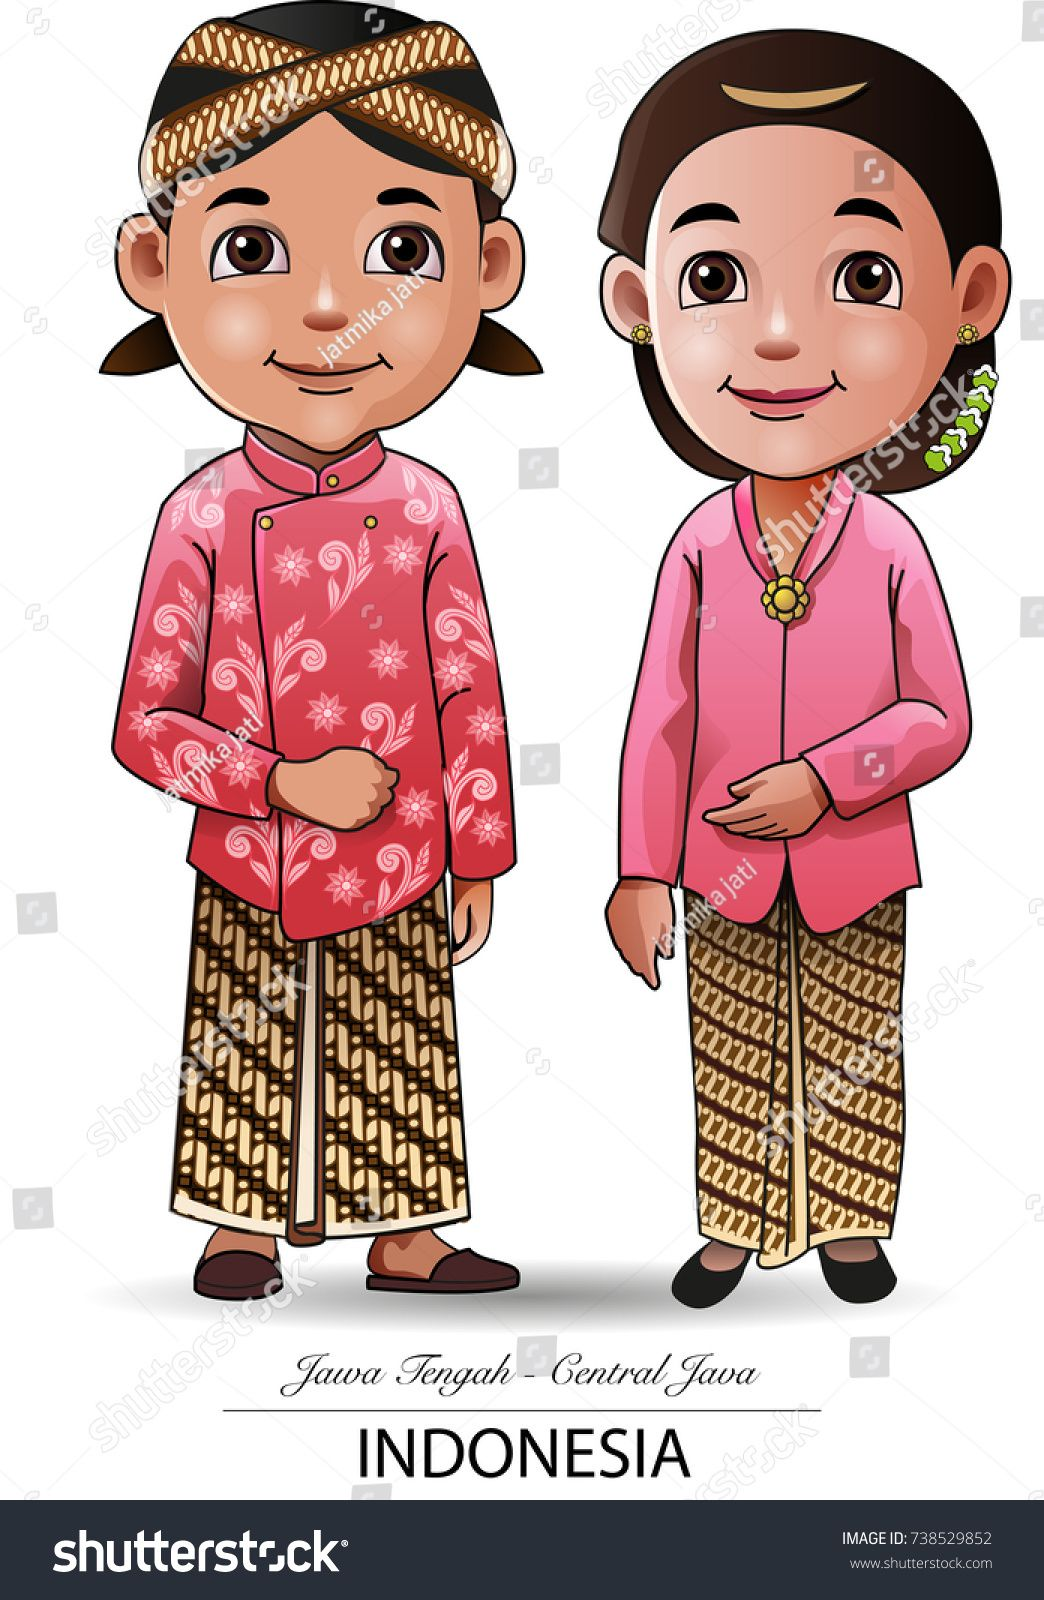 Vector illustration javanese traditional clothing